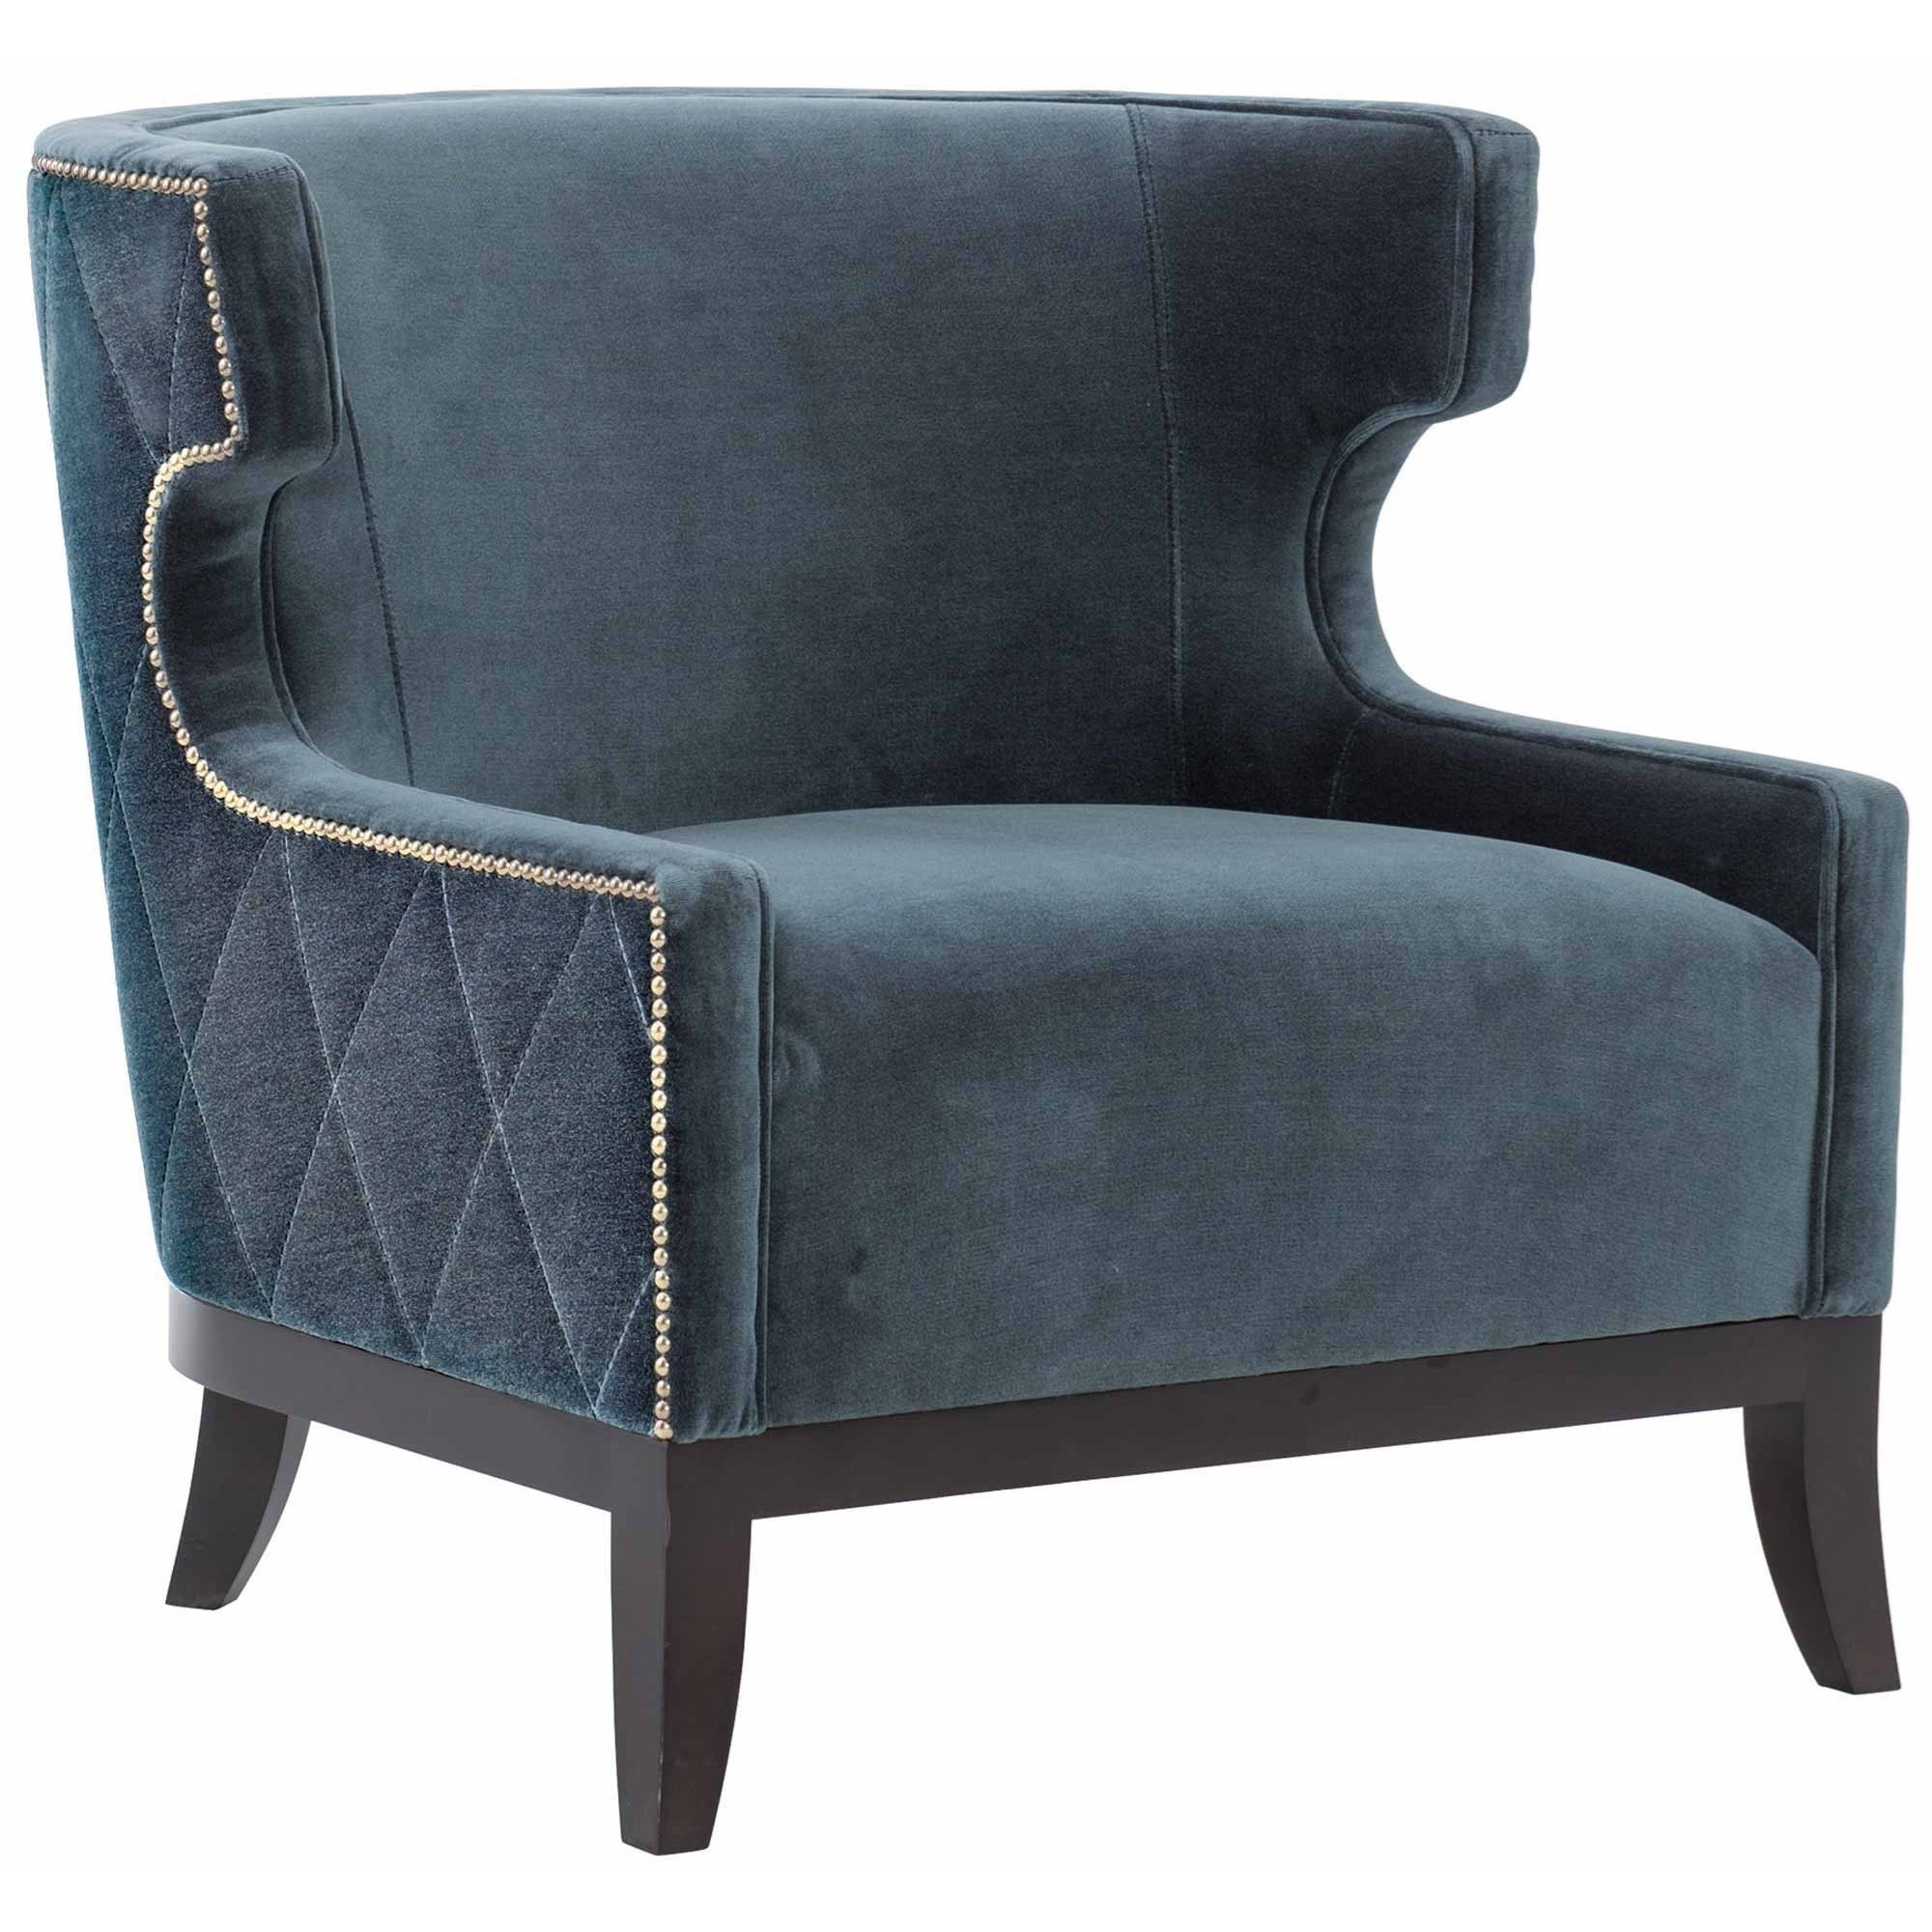 Picture of: Bernhardt Emma Transitional Barrel Back Chair With Nailheads And Diamond Stitching Sheely S Furniture Appliance Upholstered Chairs